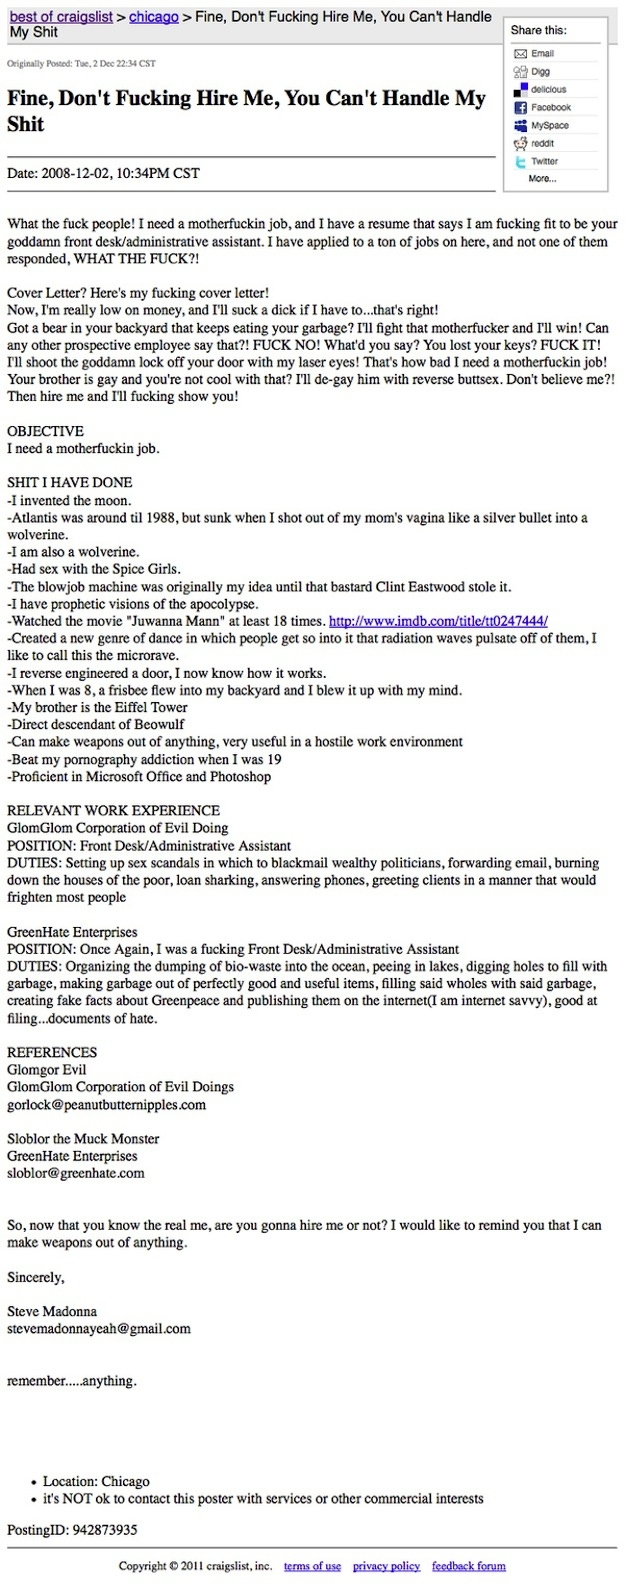 This resume that YOU CAN'T EVEN HANDLE: